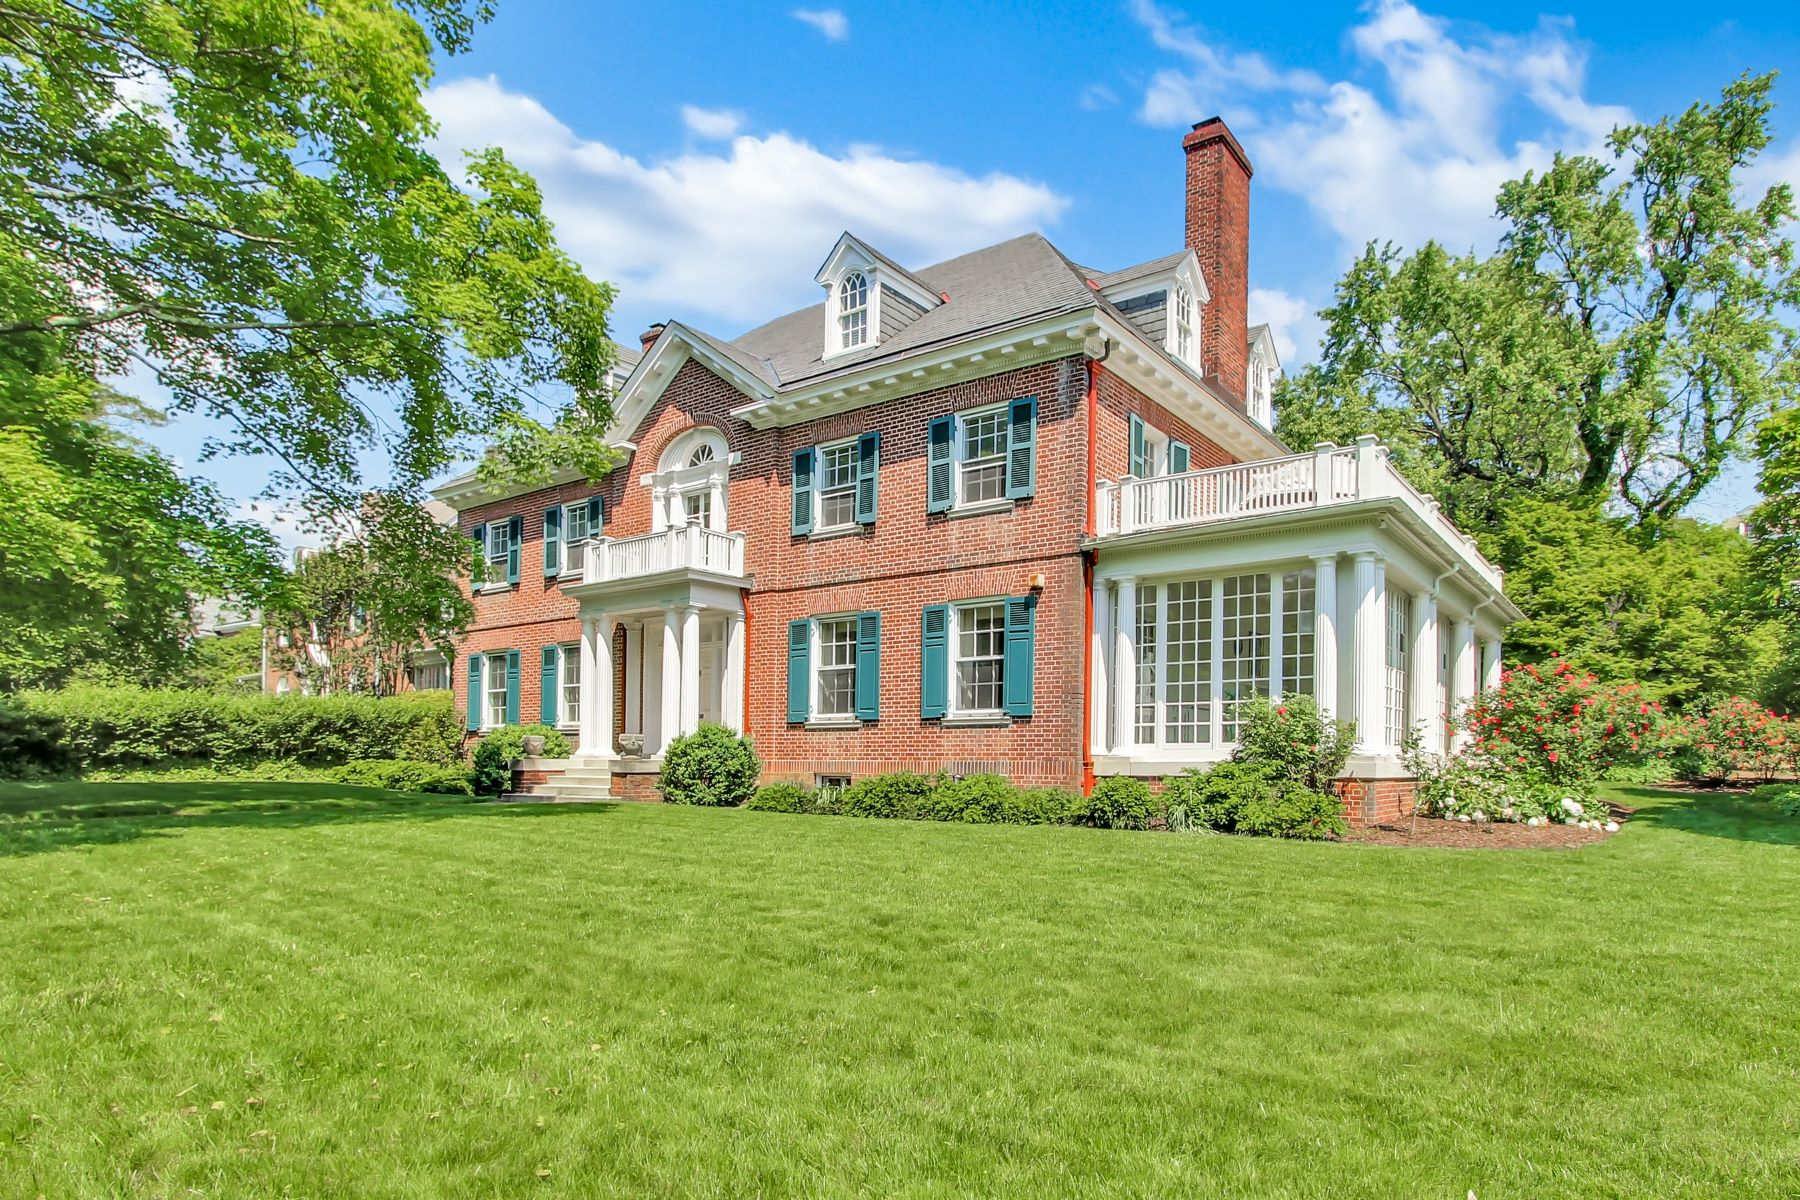 Single Family Homes for Sale at Roland Park 312 Overhill Road Baltimore, Maryland 21210 United States